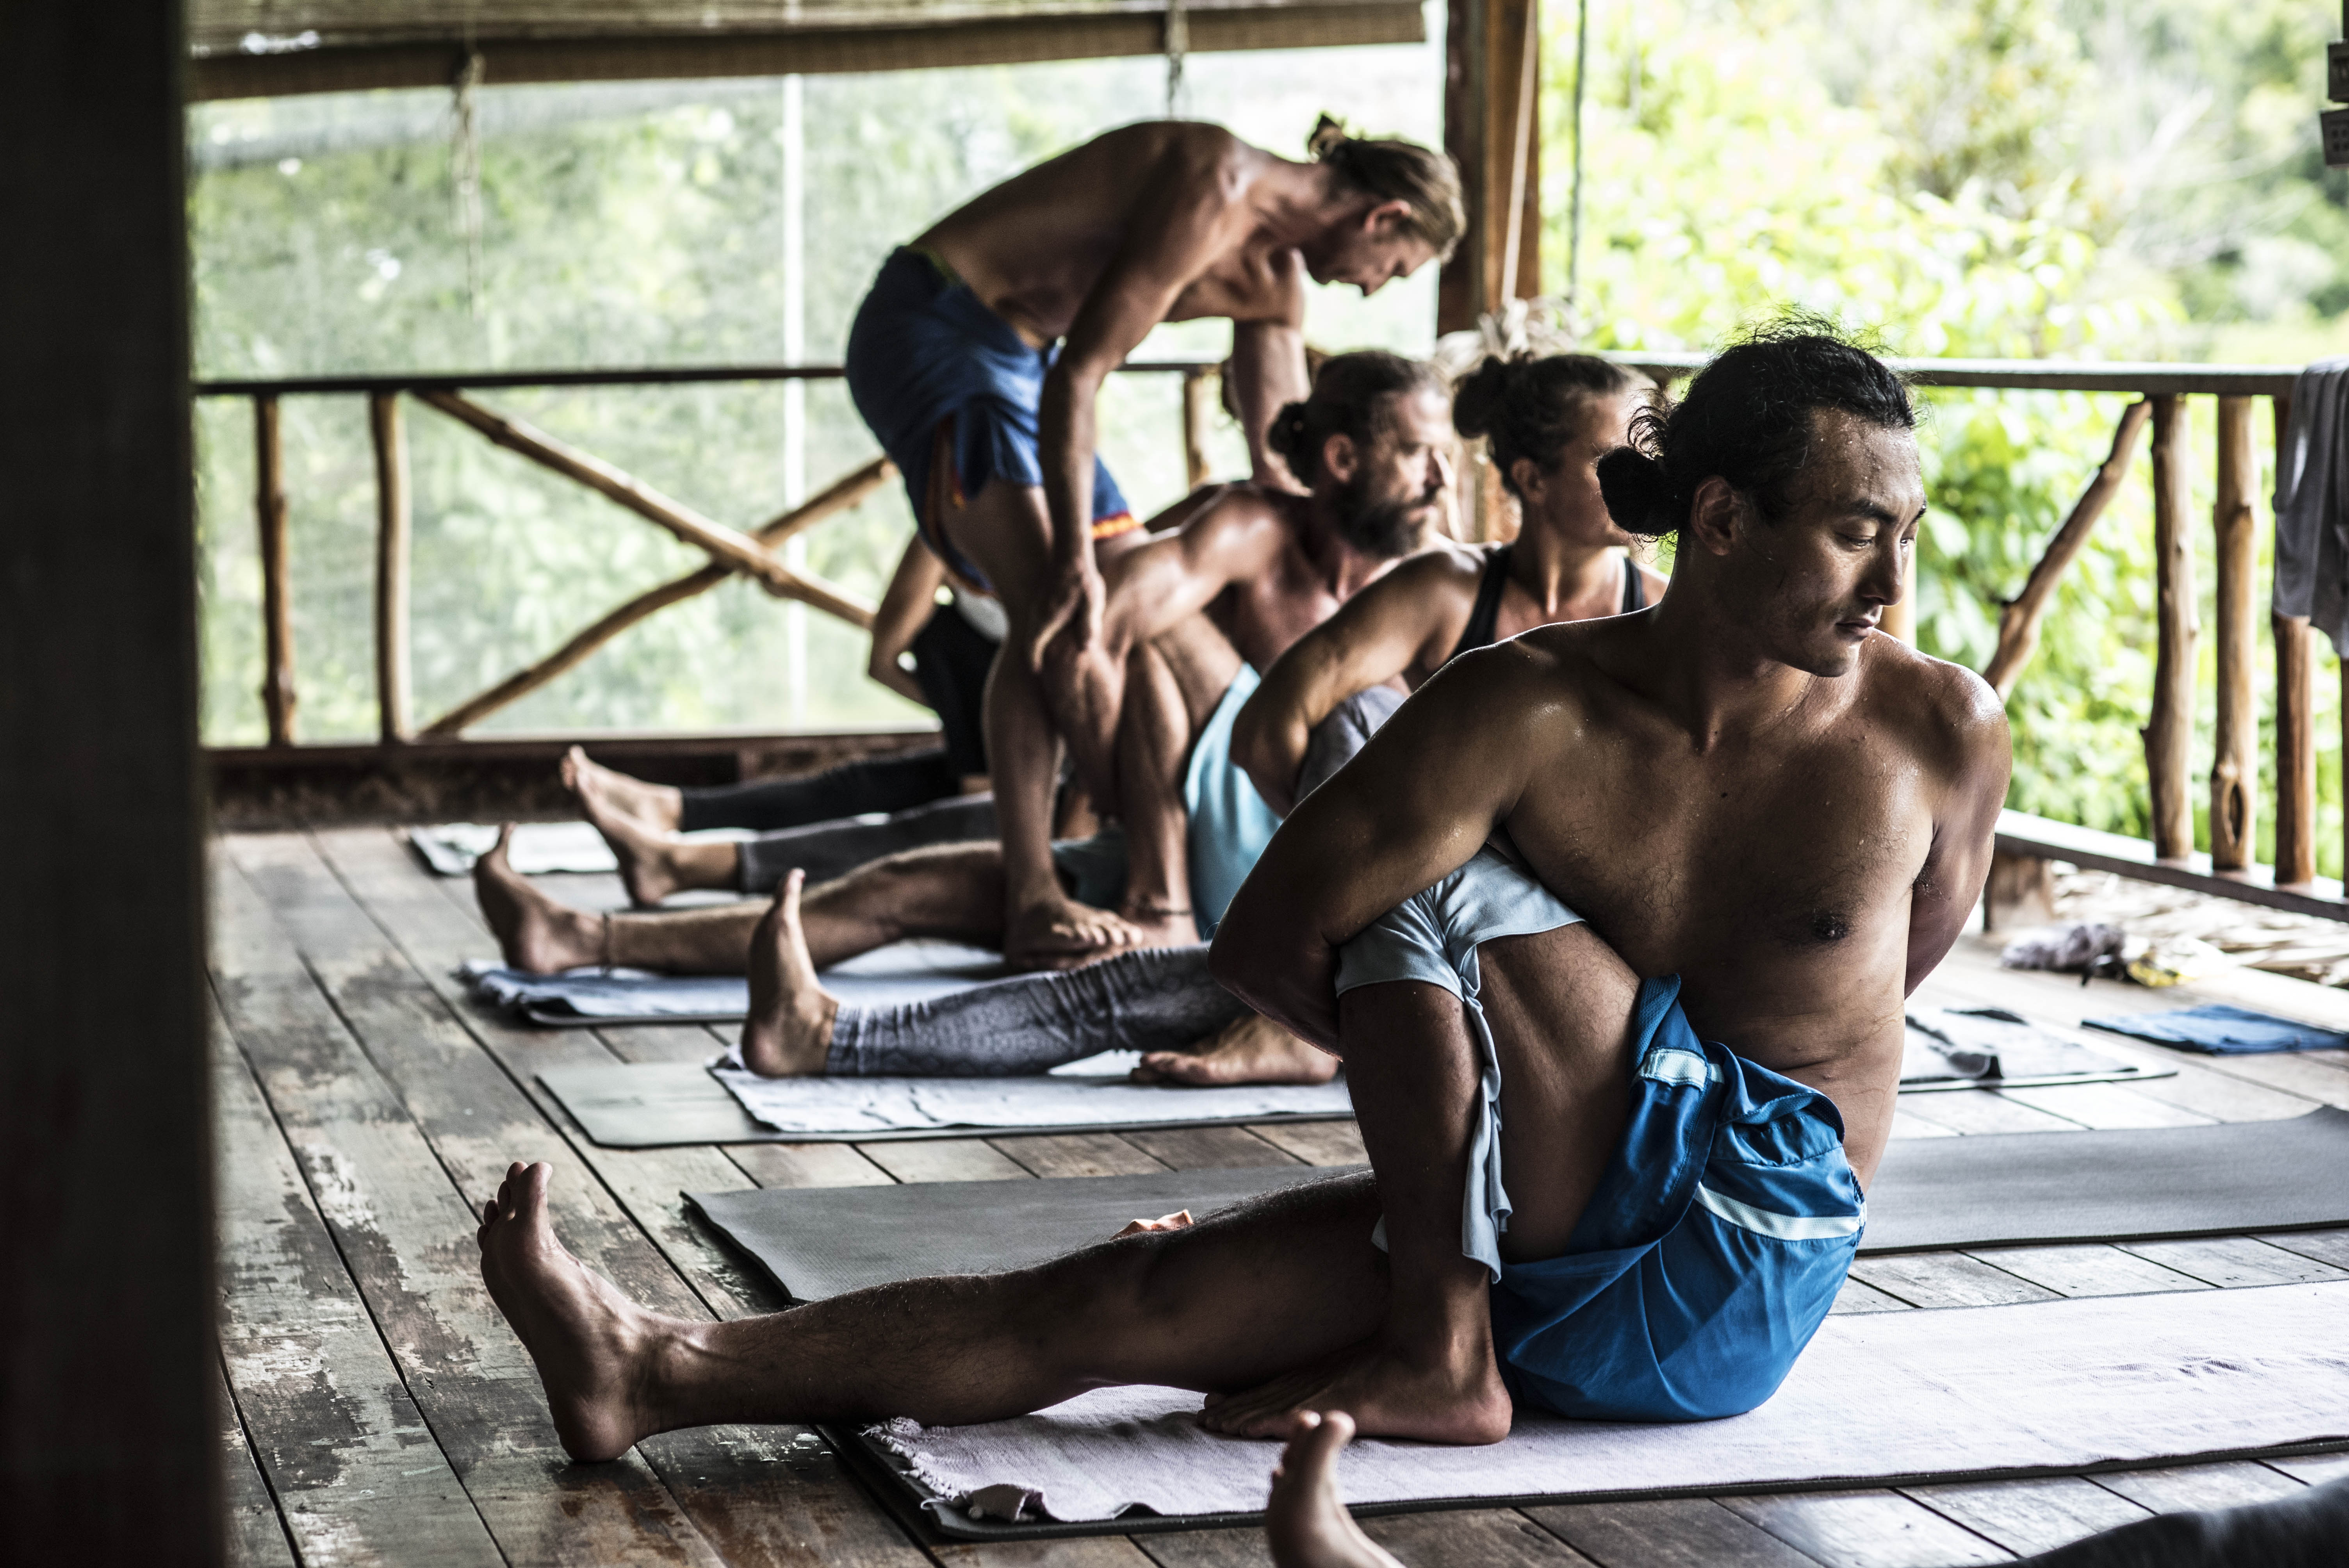 6 day ashtanga yoga retreat at the yoga retreat koh phangan, thailand000071521281307.jpg